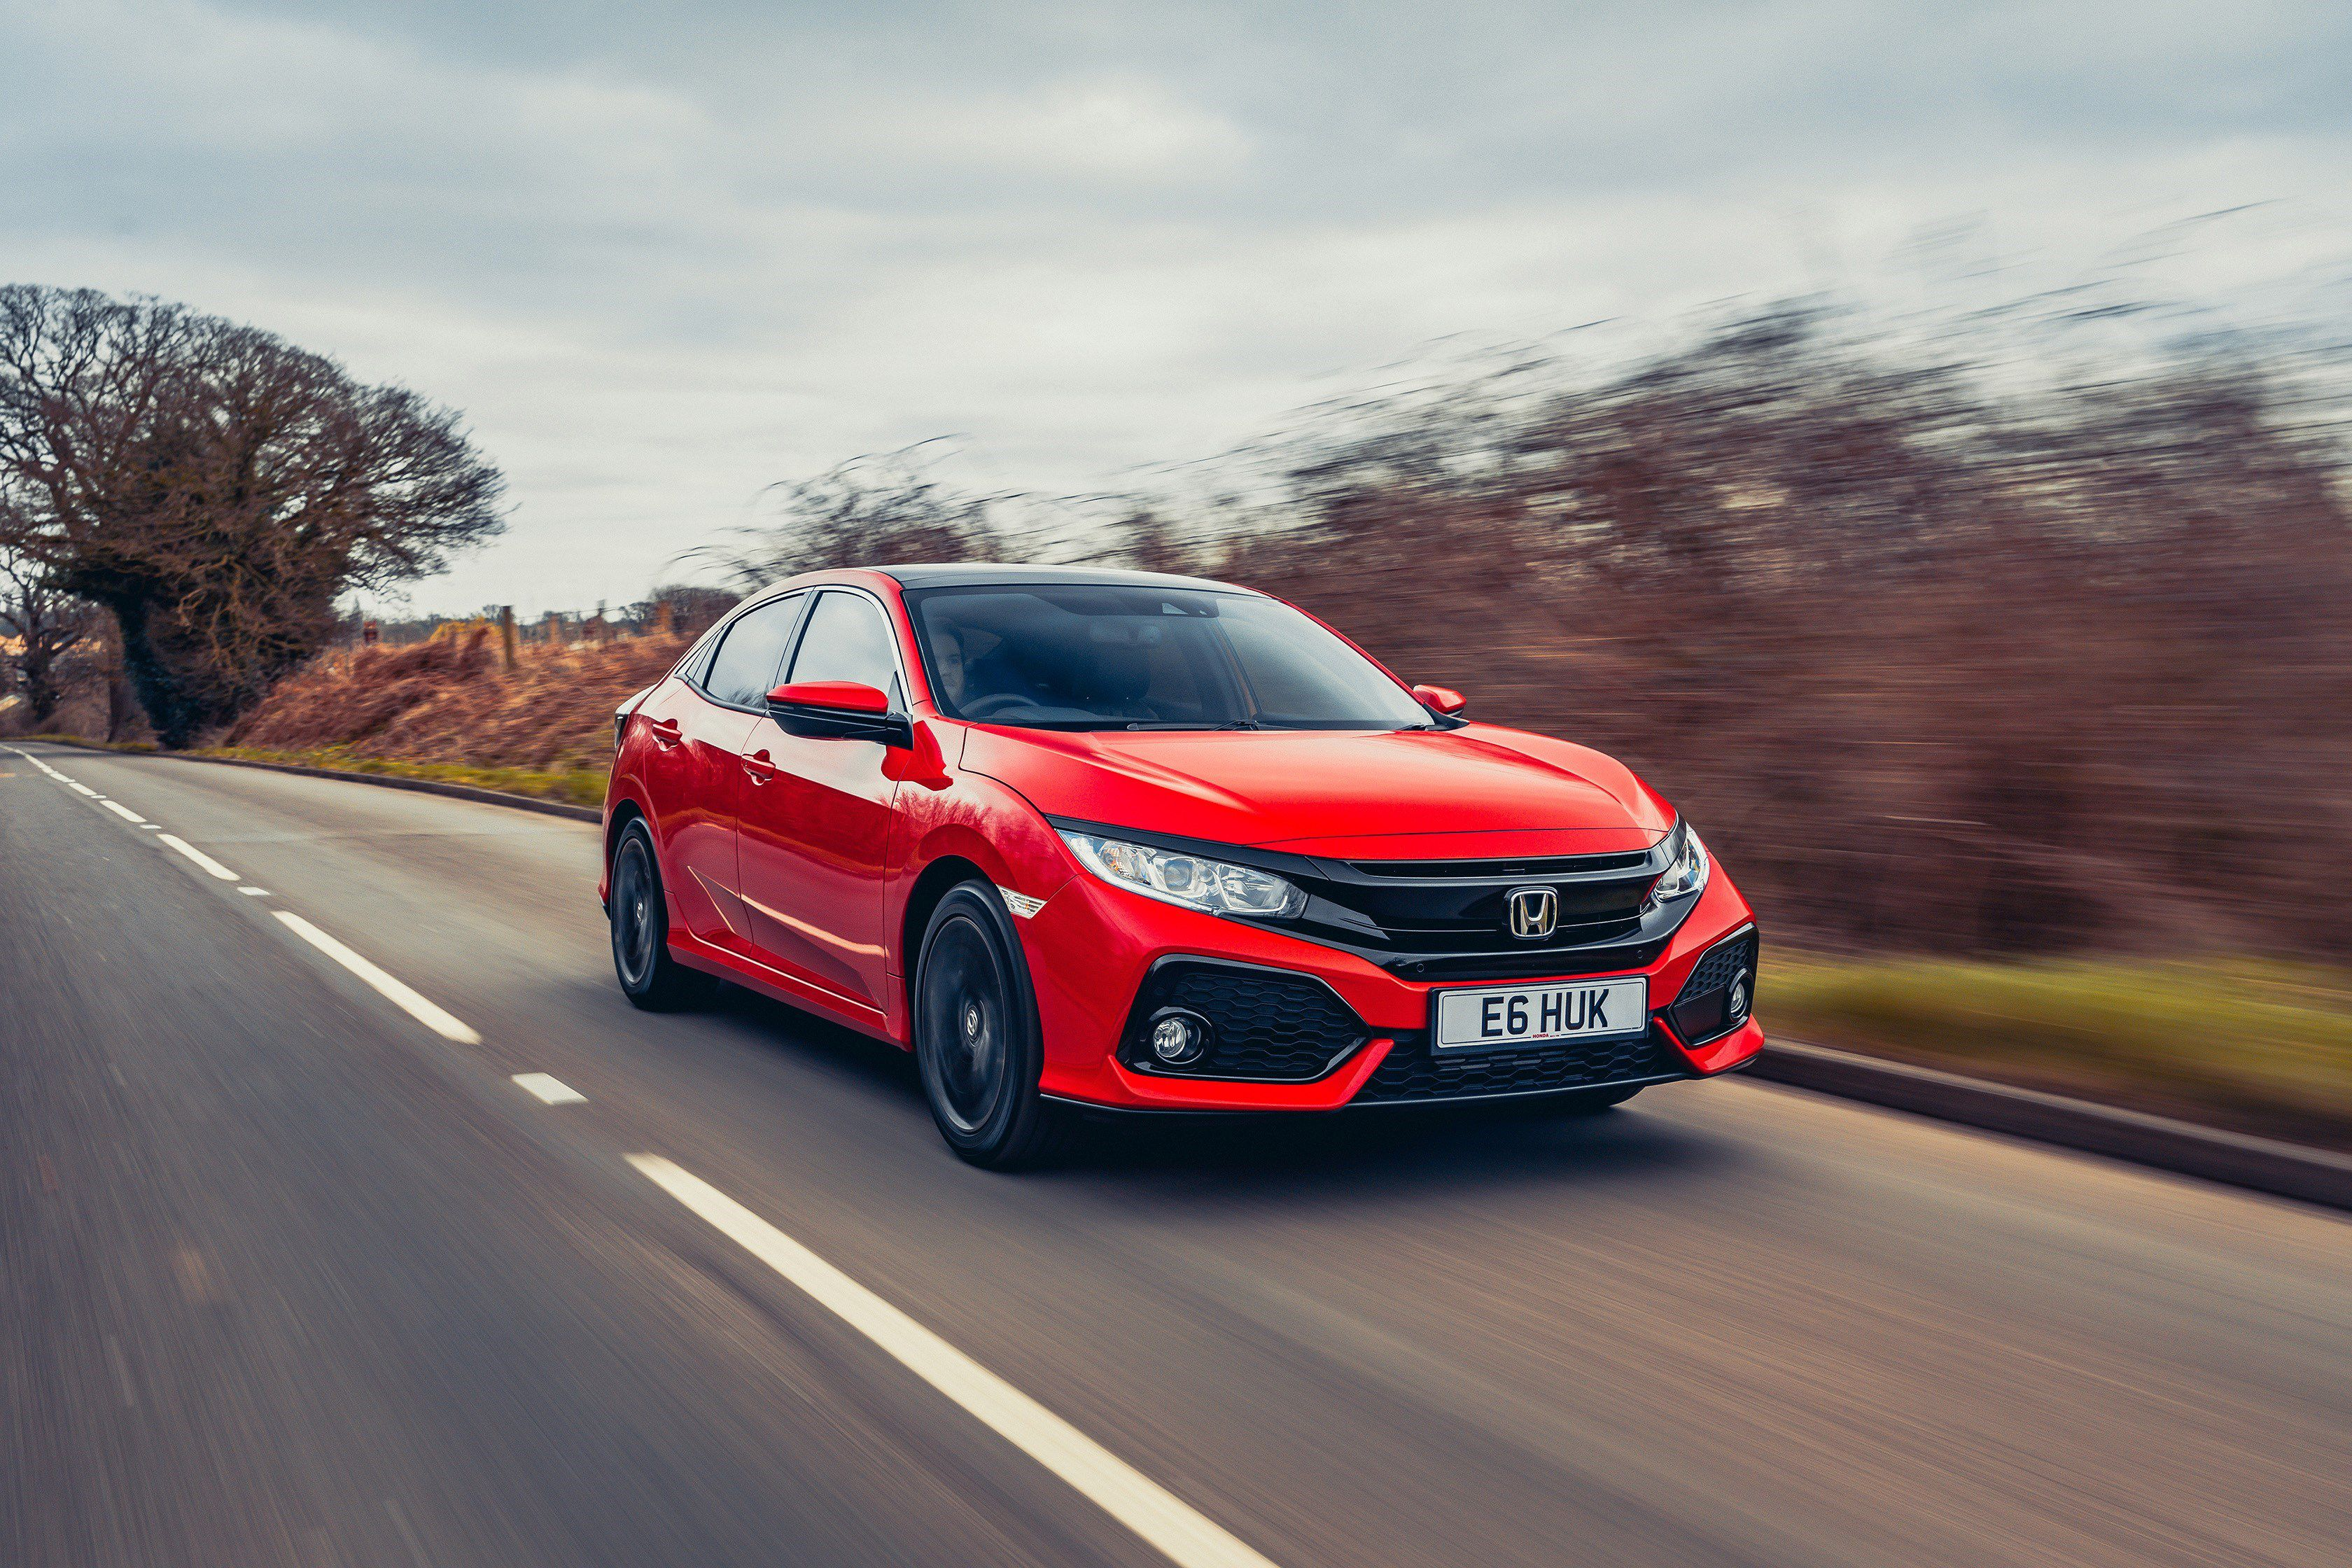 Red Honda Civic diesle driving toward you down a country lane